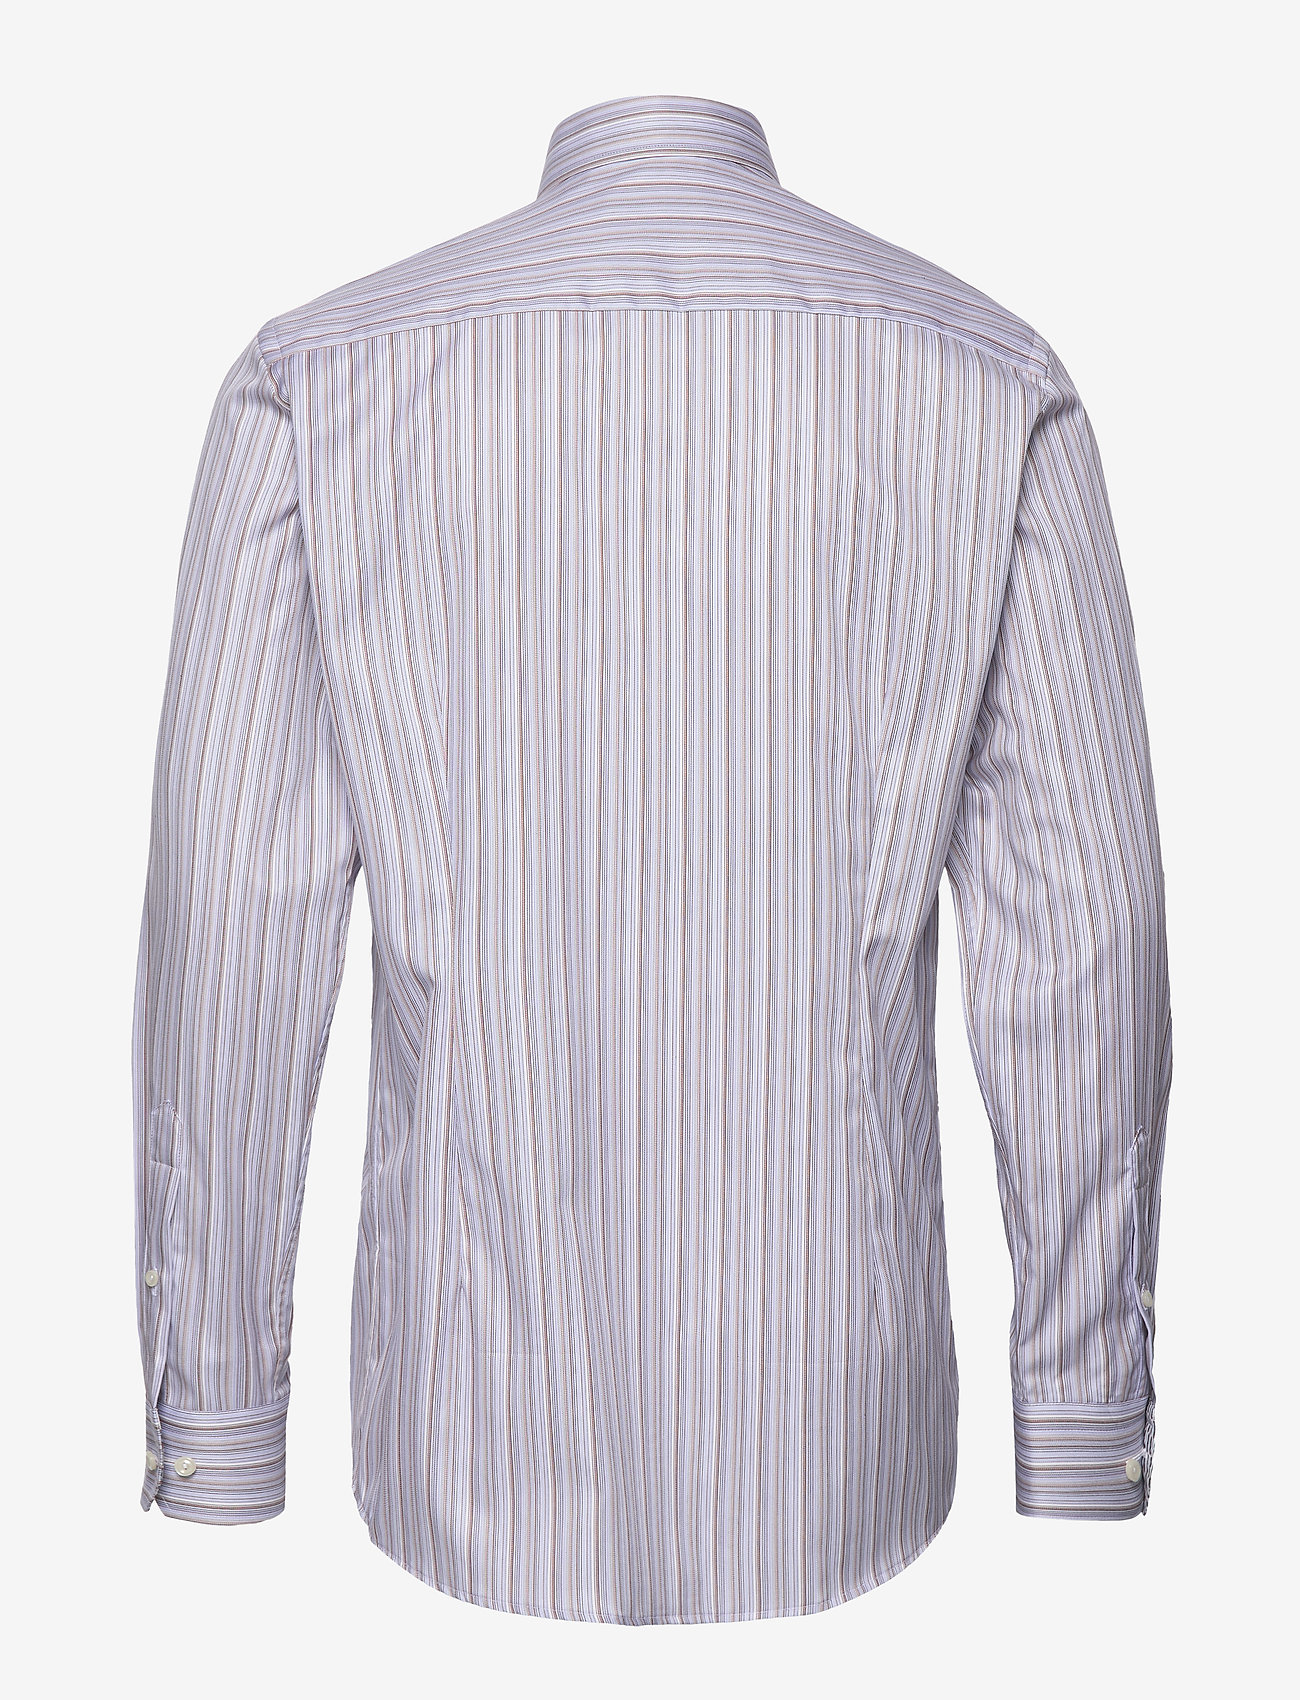 Eton Fine Striped Twill Shirt - Contemporary Fit Shirts